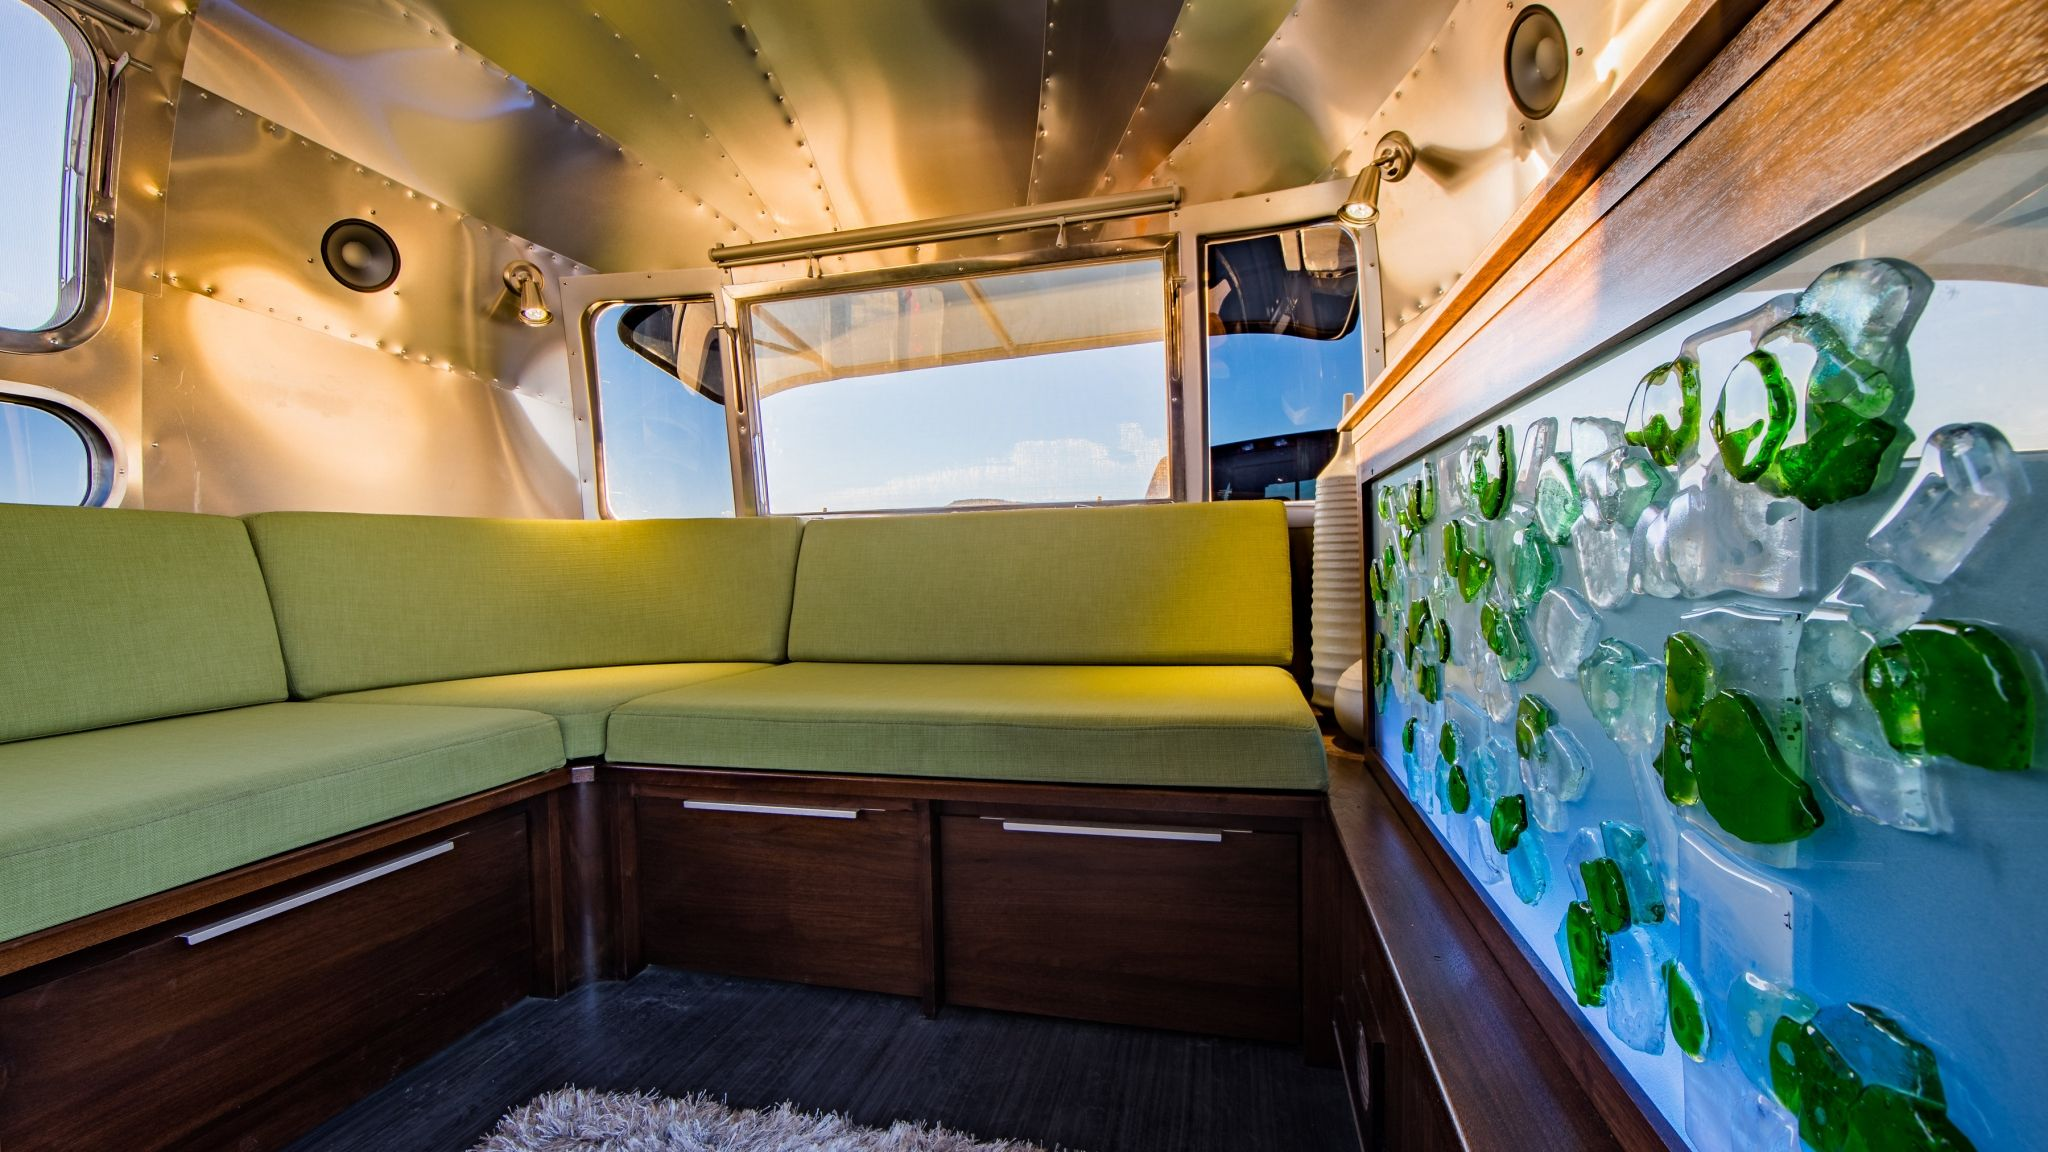 Airstream Rebuild Camper ReParadise Airstream renovation